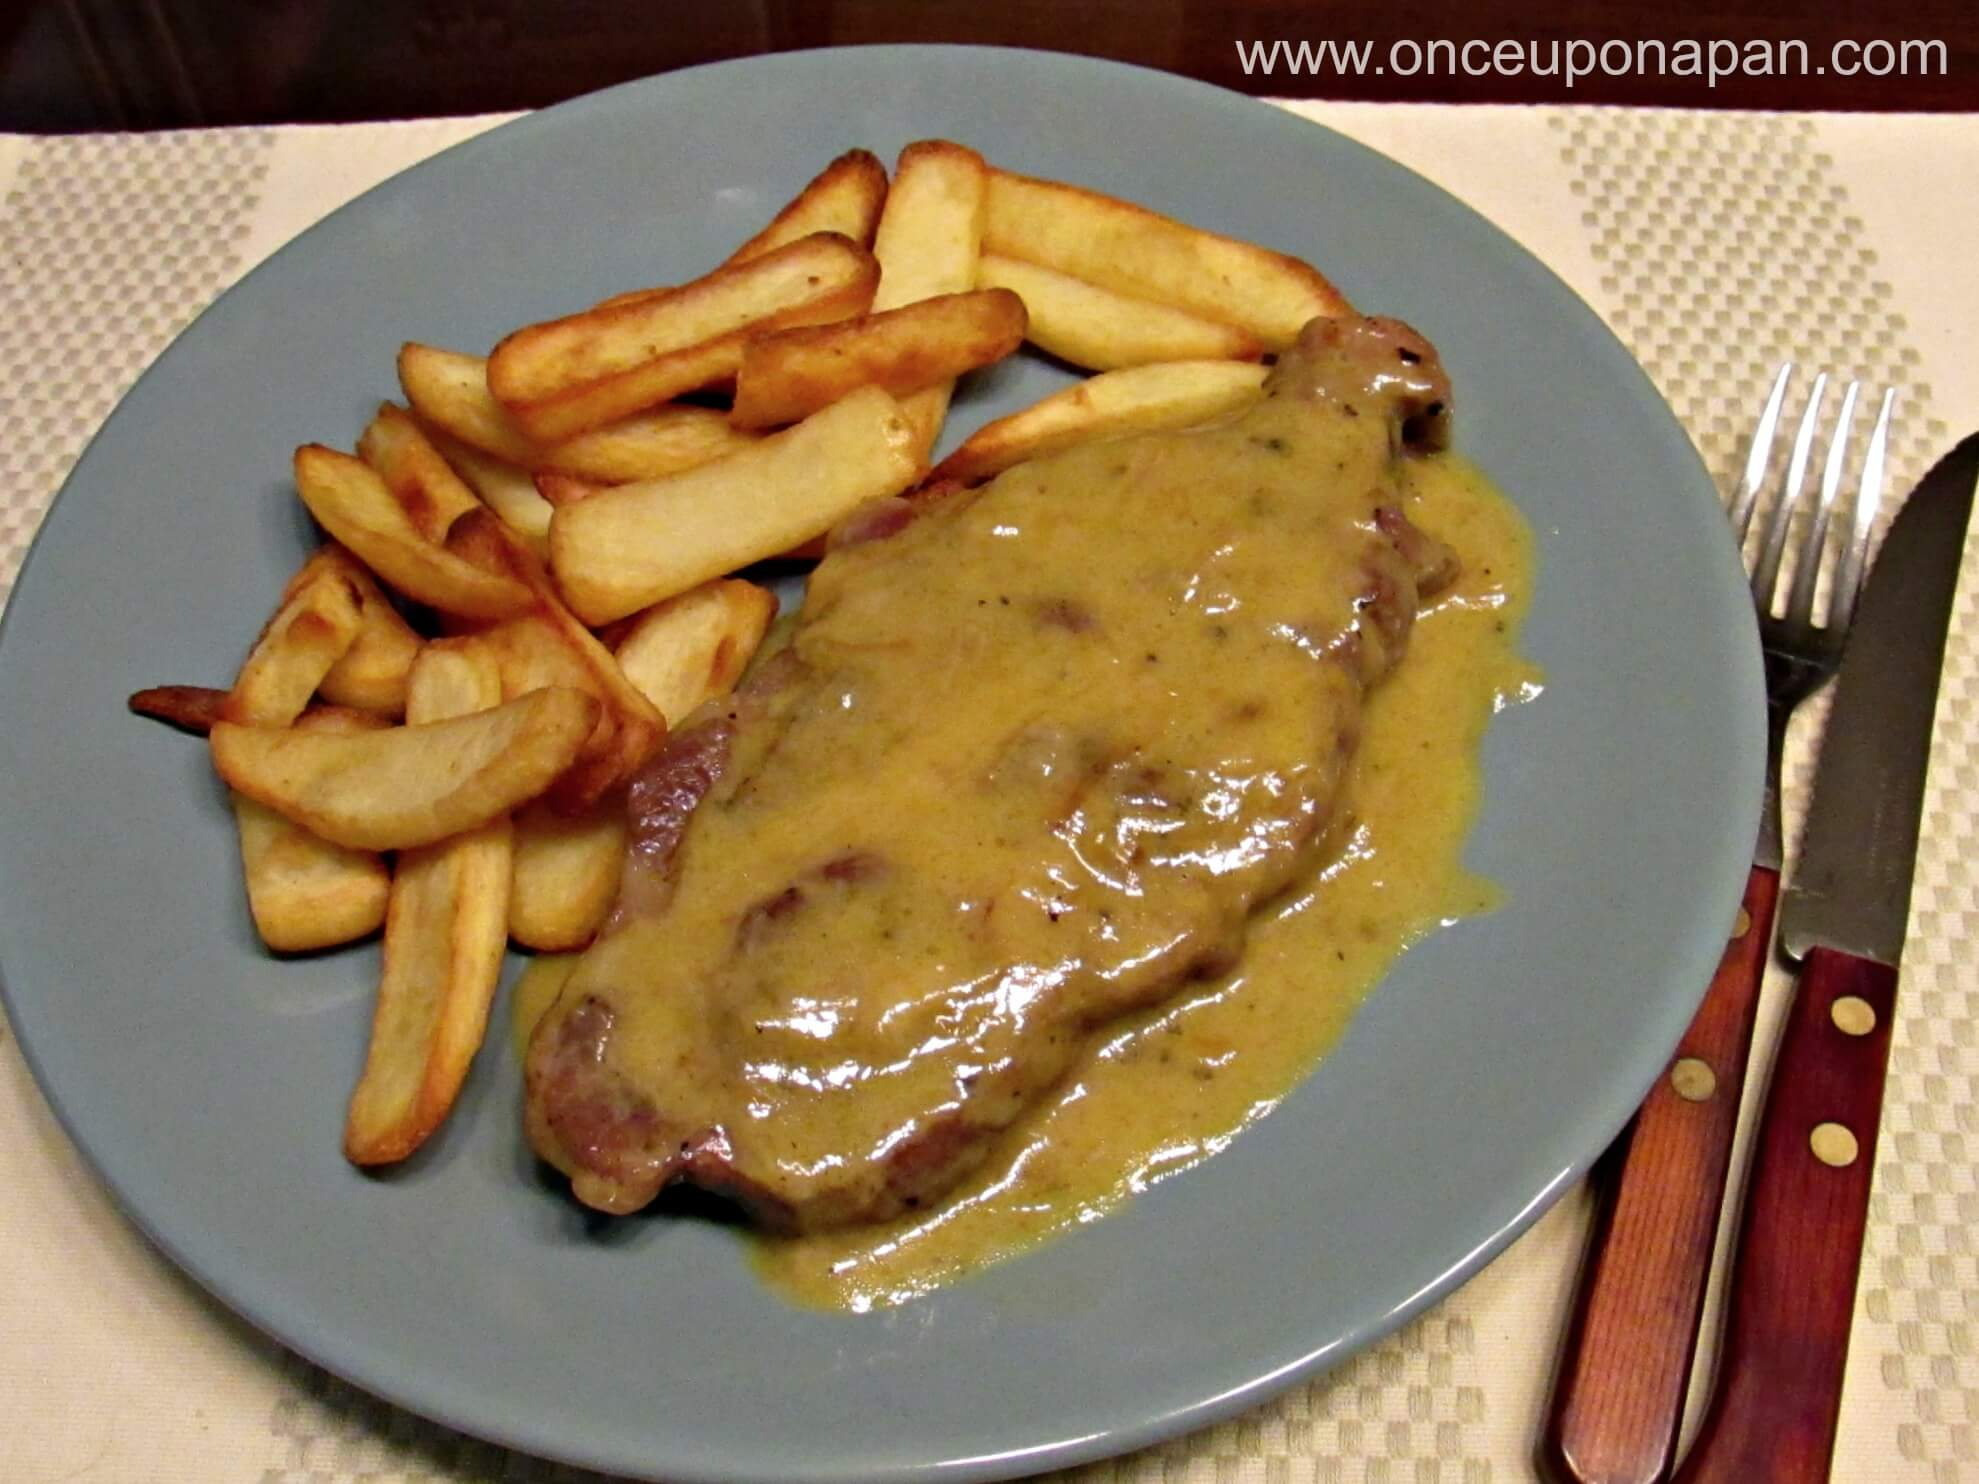 Pork collar chops with honey and mustard sauce